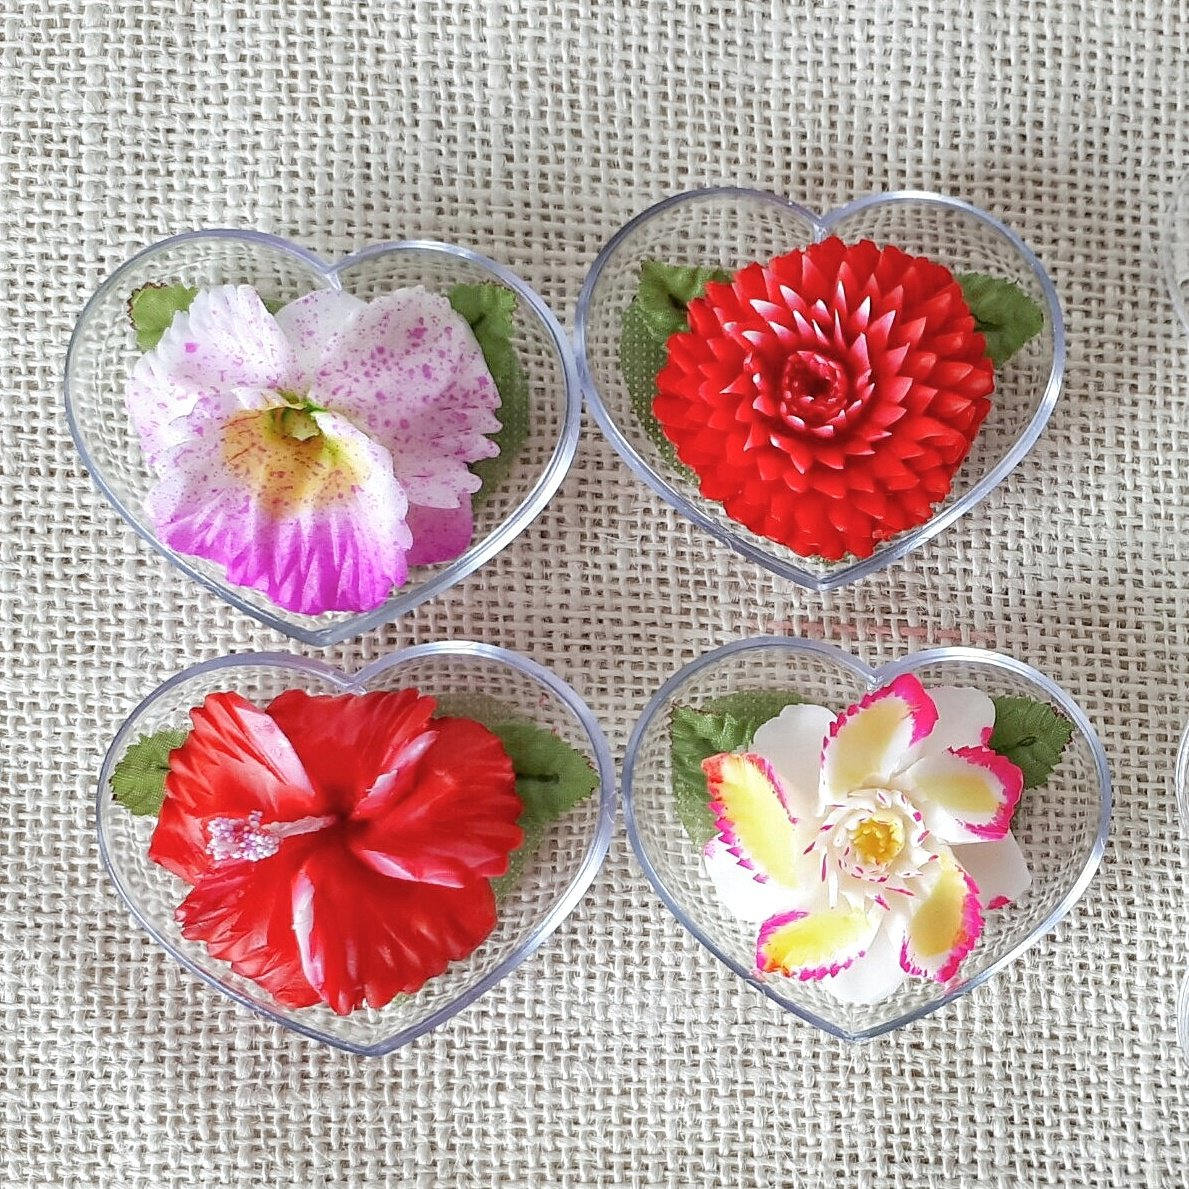 Exotic Flower Set of 4 Hand Carved Decorative Soaps with Jasmine Aroma Essential Oil, Handmade Soap Carving by Thai Artisan